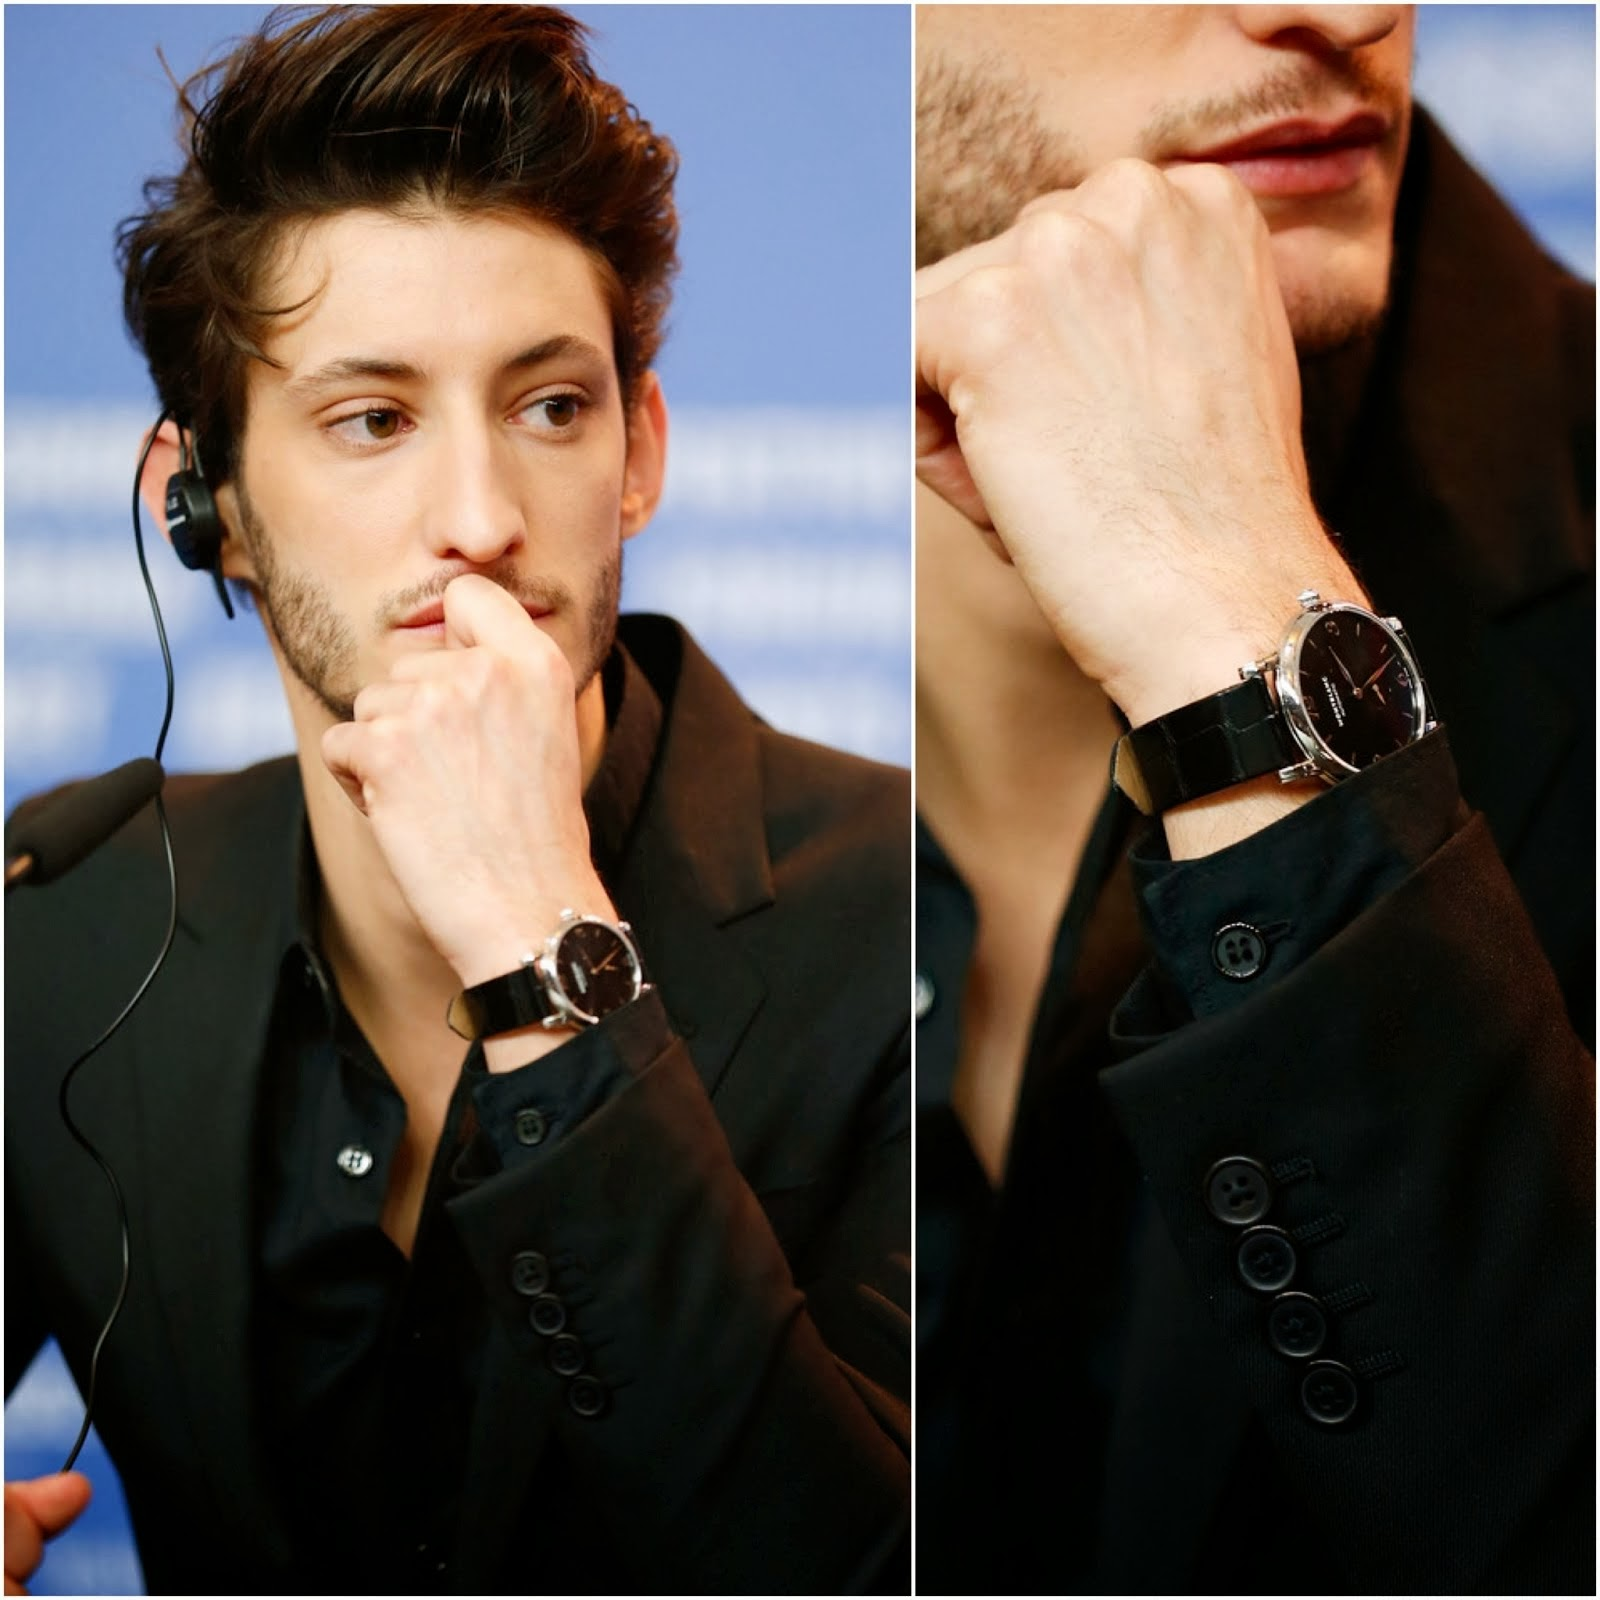 Pierre Niney's Montblanc Star Classique Timepiece - 64th Berlinale International Film Festival